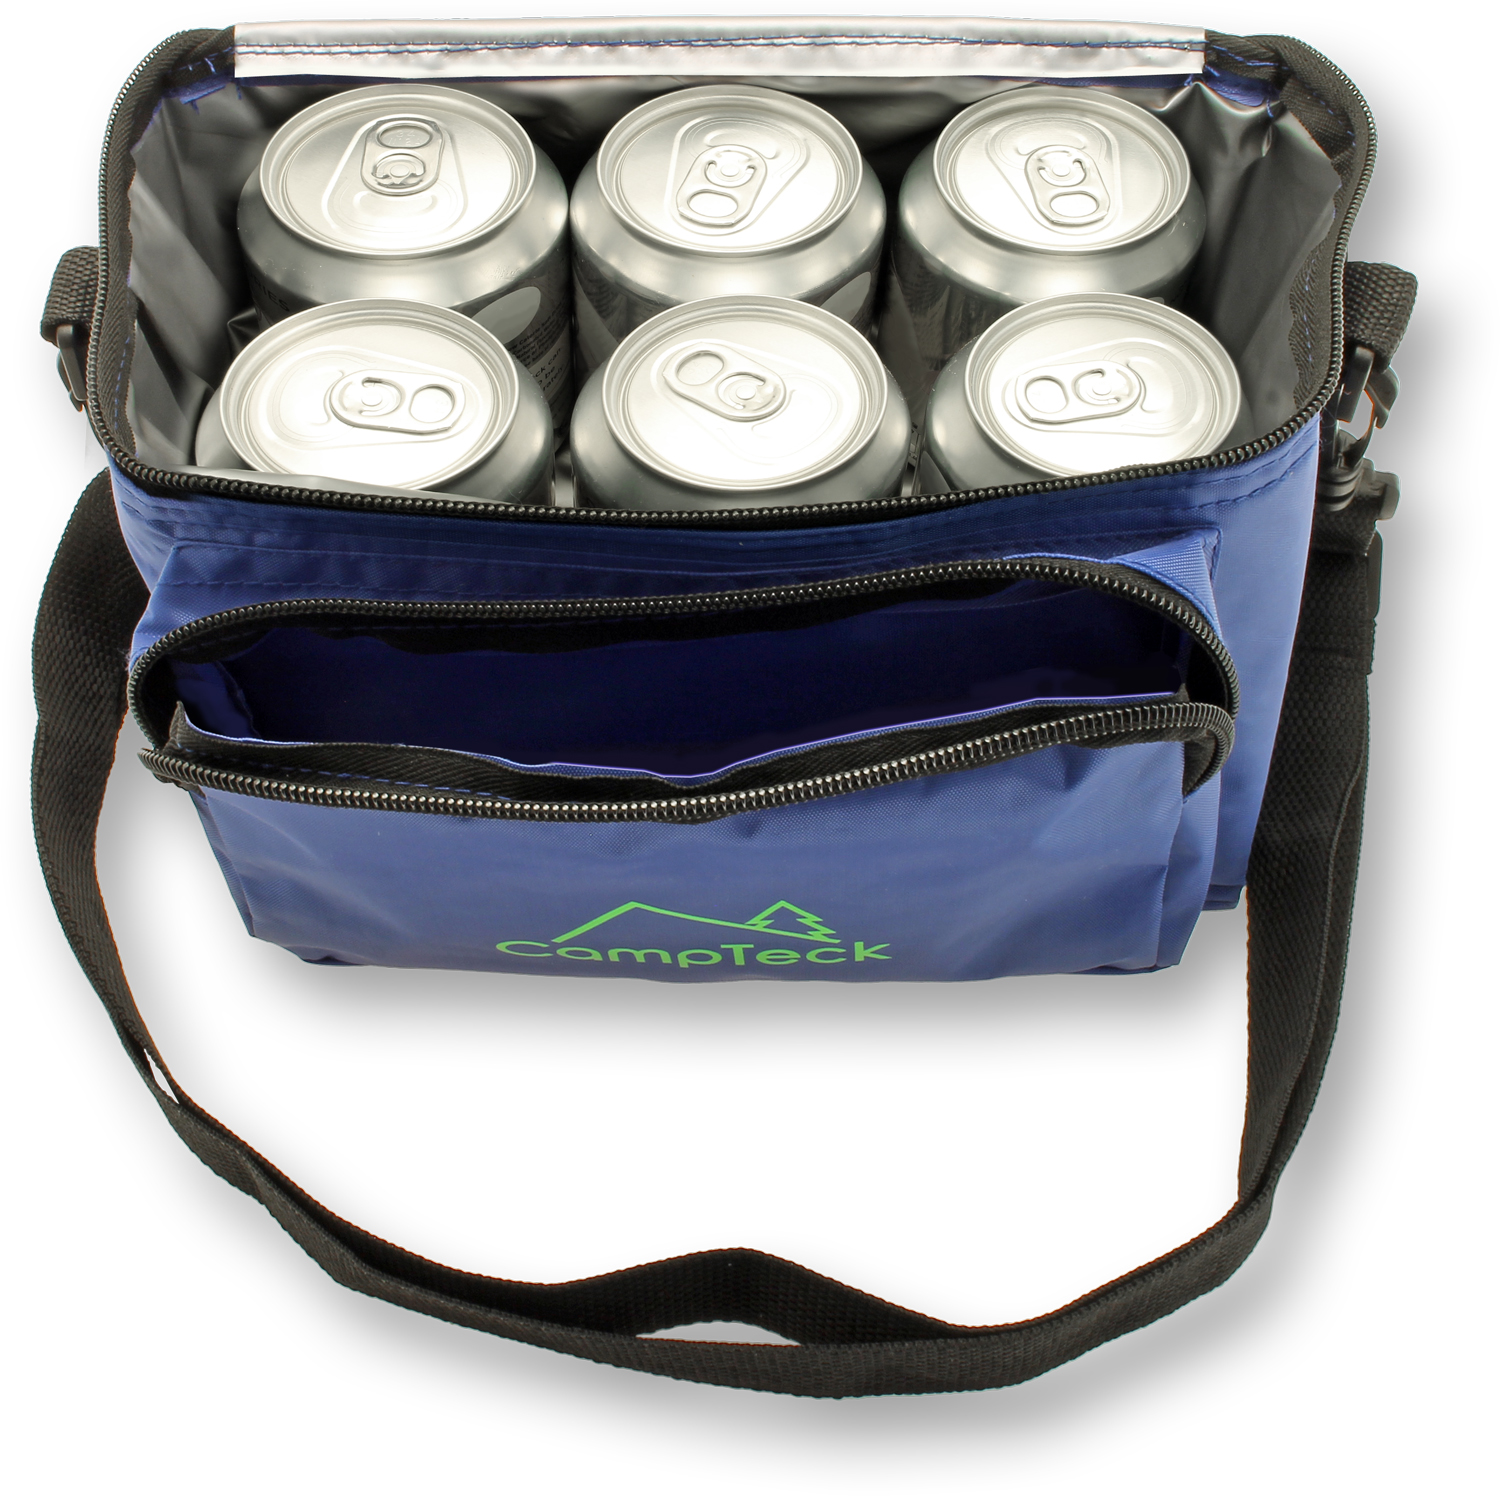 Can U Keep Beer In A Cooler In The Car